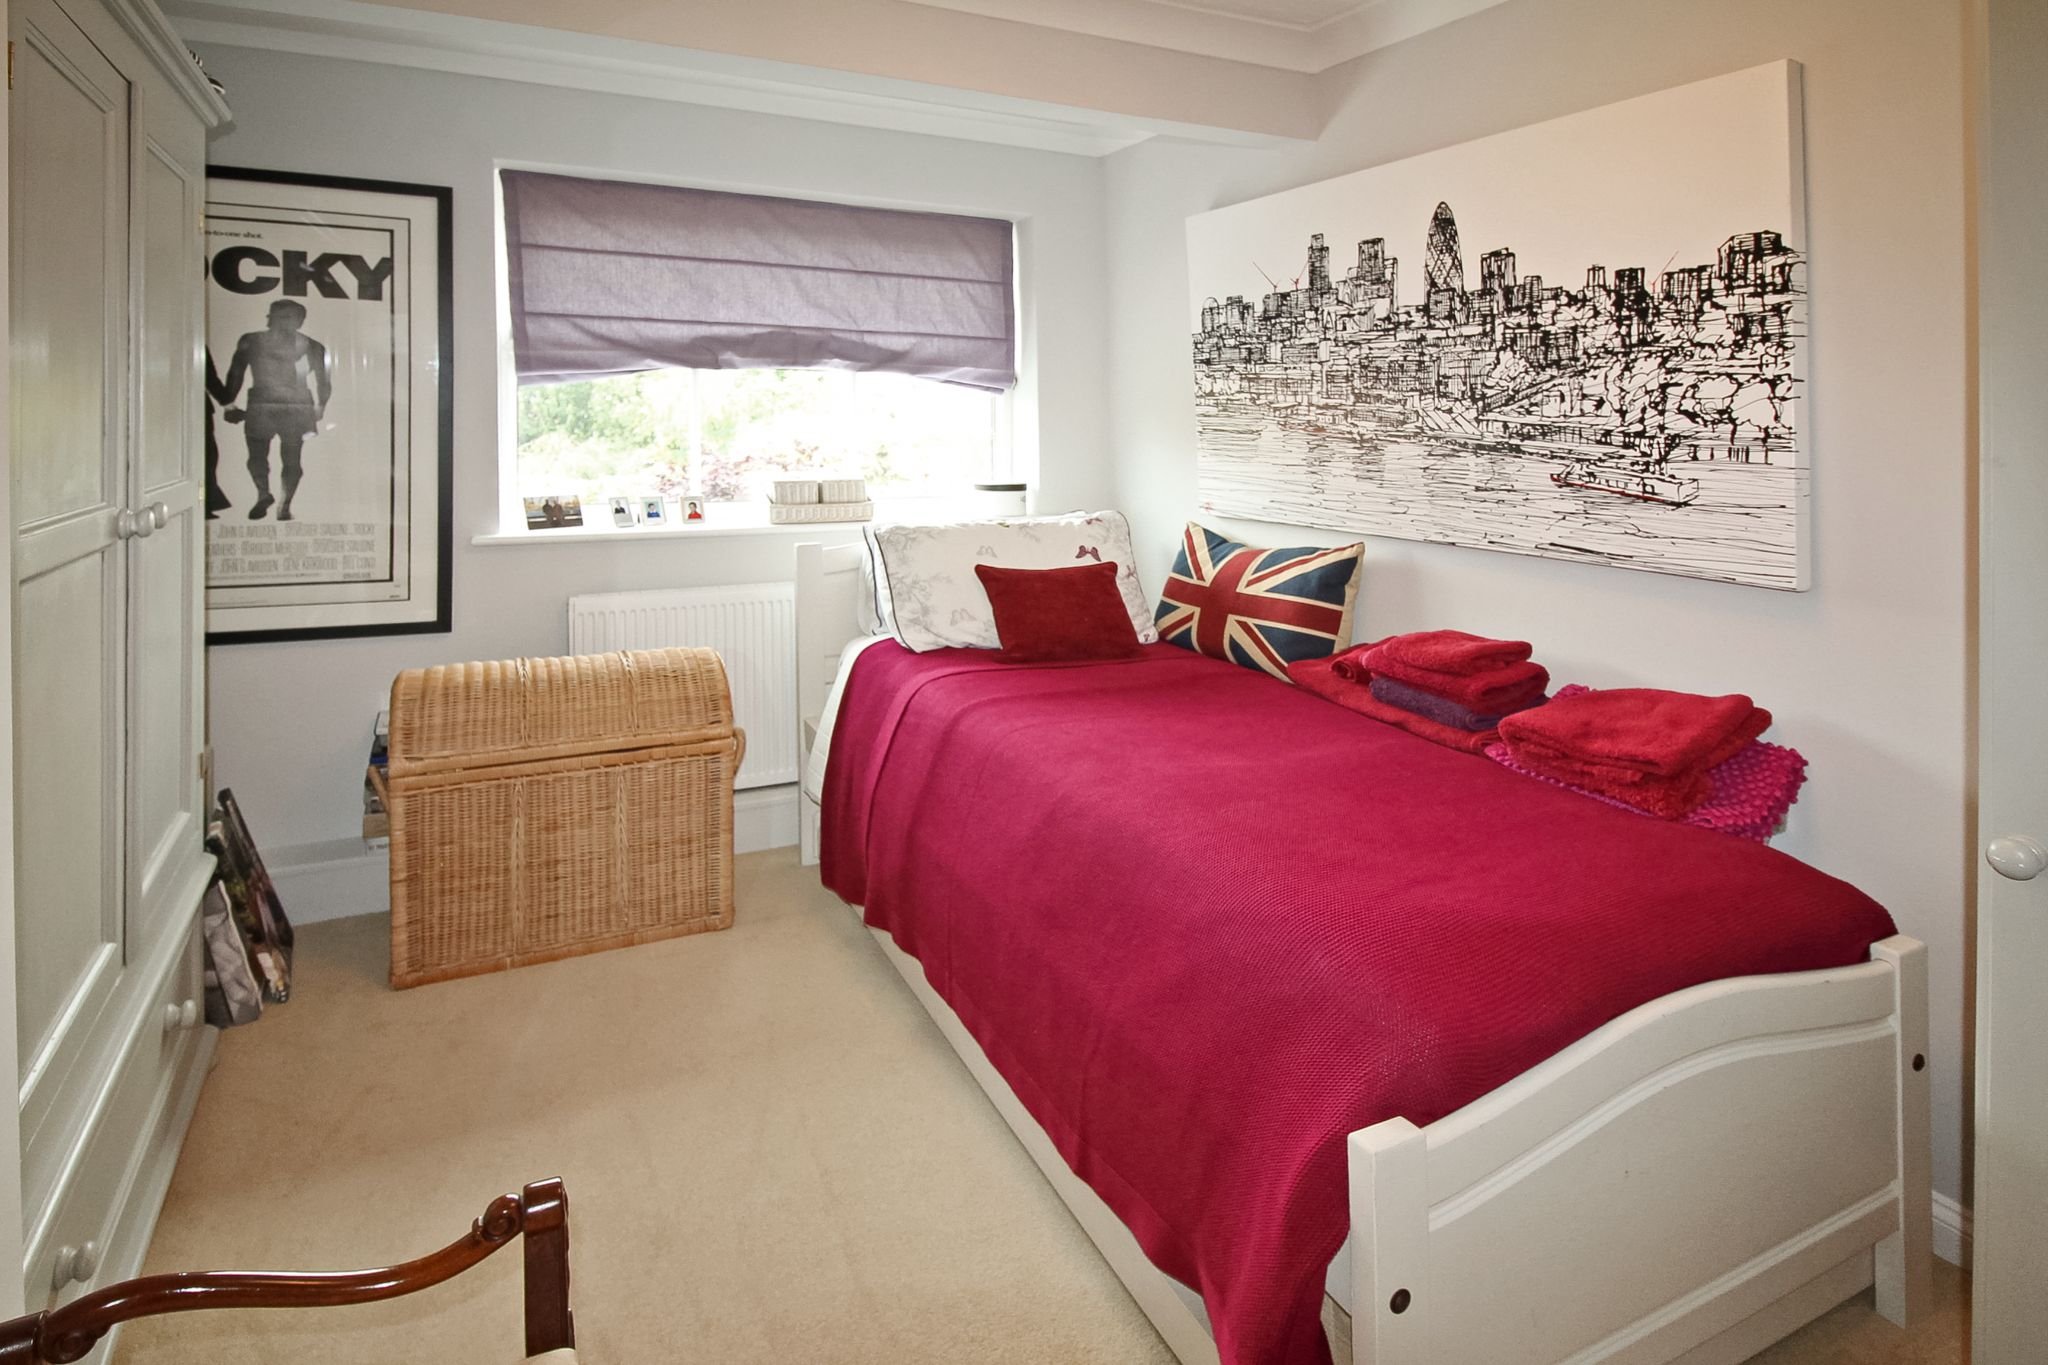 4 bedroom detached house For Sale in Solihull - Photograph 13.